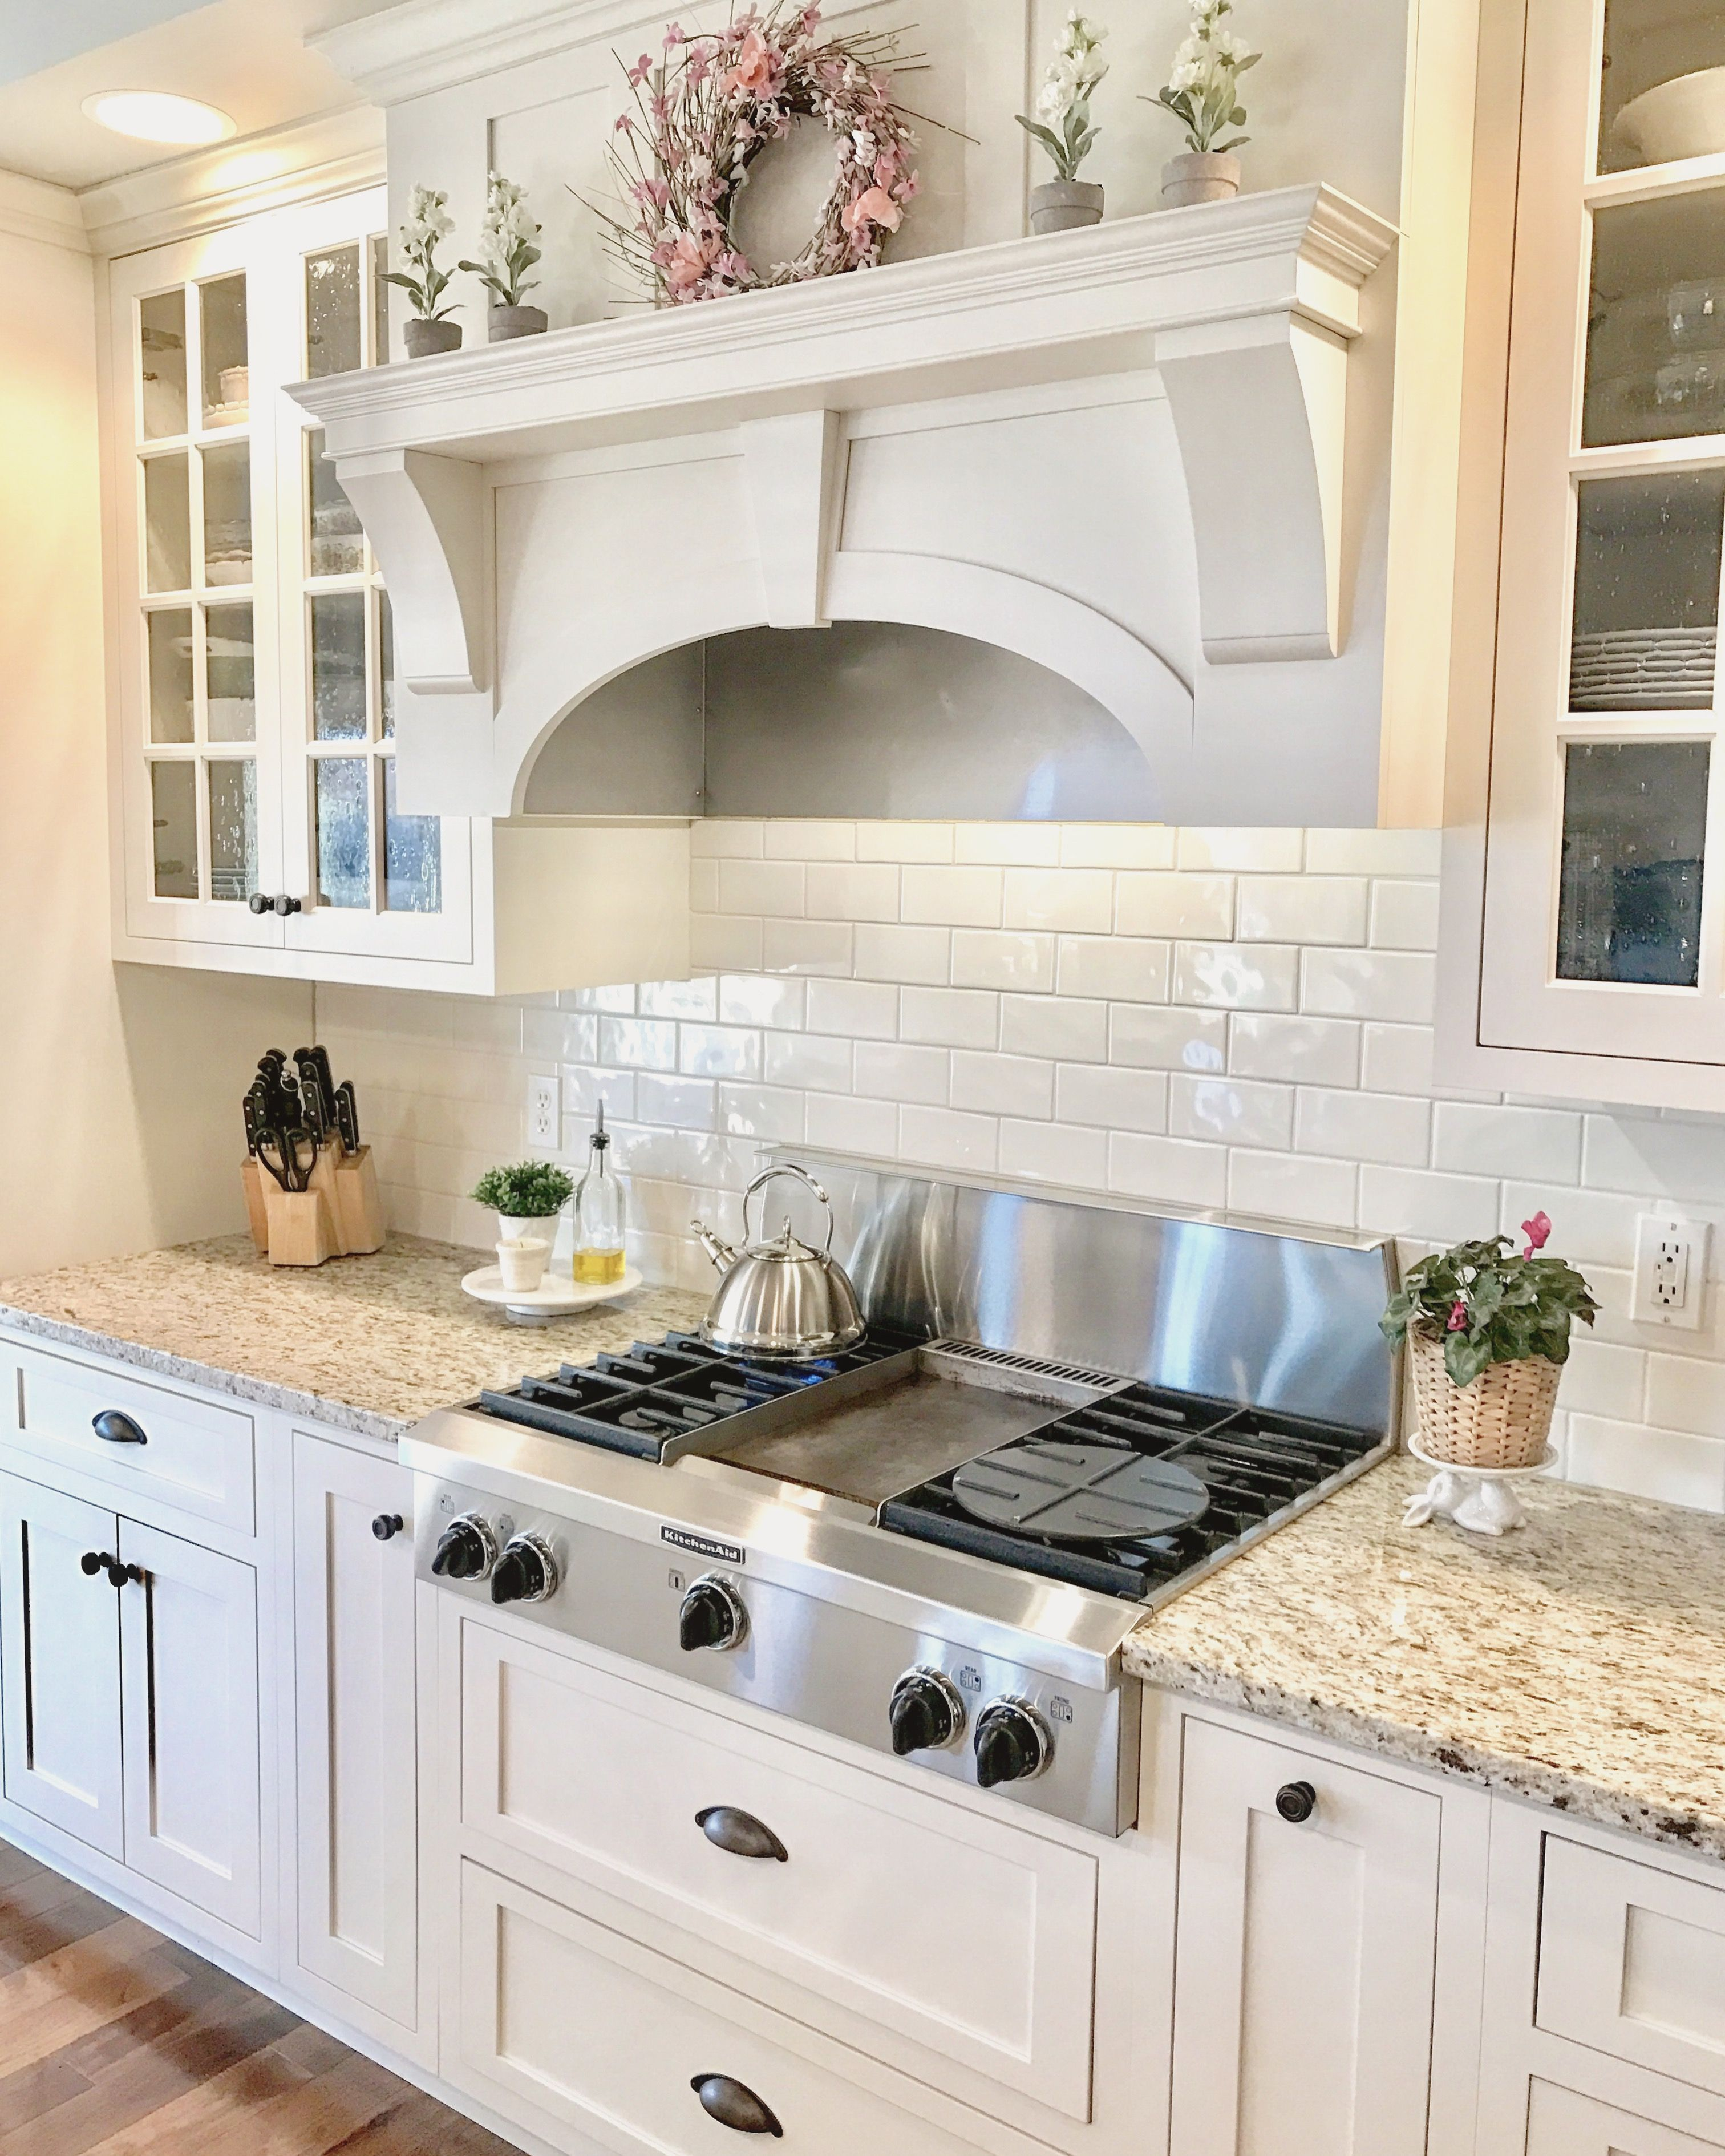 Off White Kitchen Cabinets Giallo Ornamental Granite Glass Cabinet Doors Sherwin Wi Kitchen Cabinets Decor Antique White Kitchen Cabinets Off White Kitchens